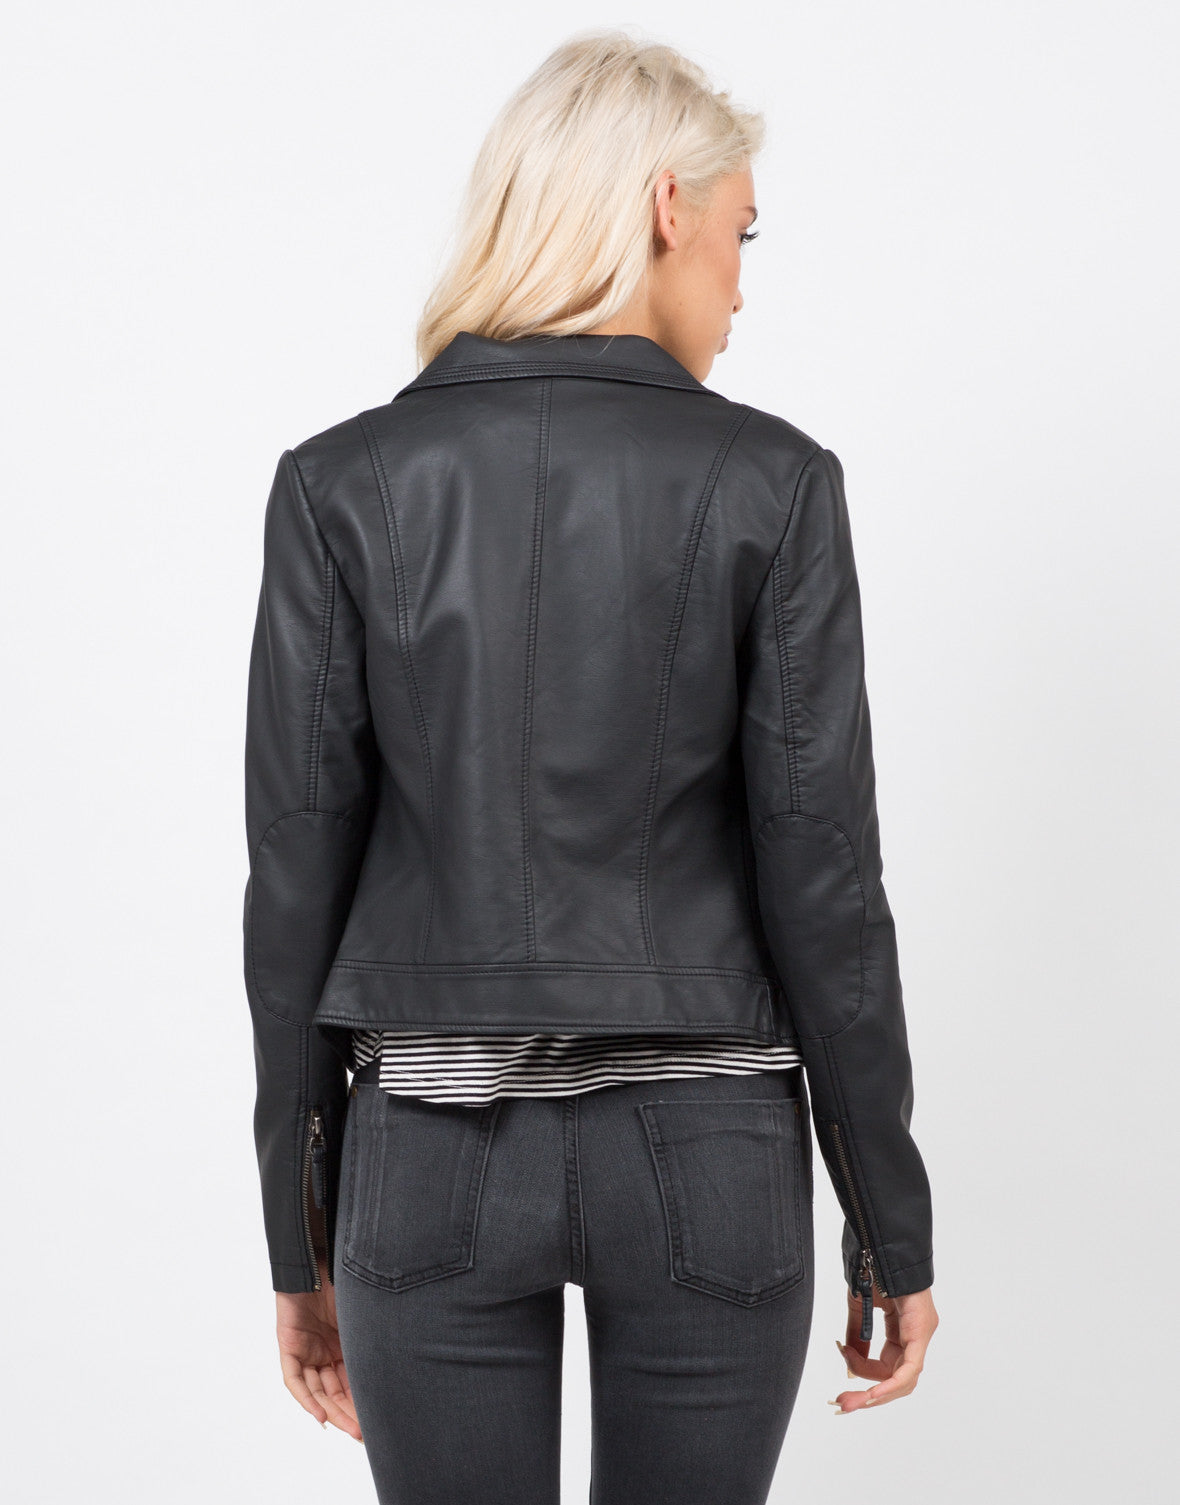 Back View of Pleather Moto Jacket